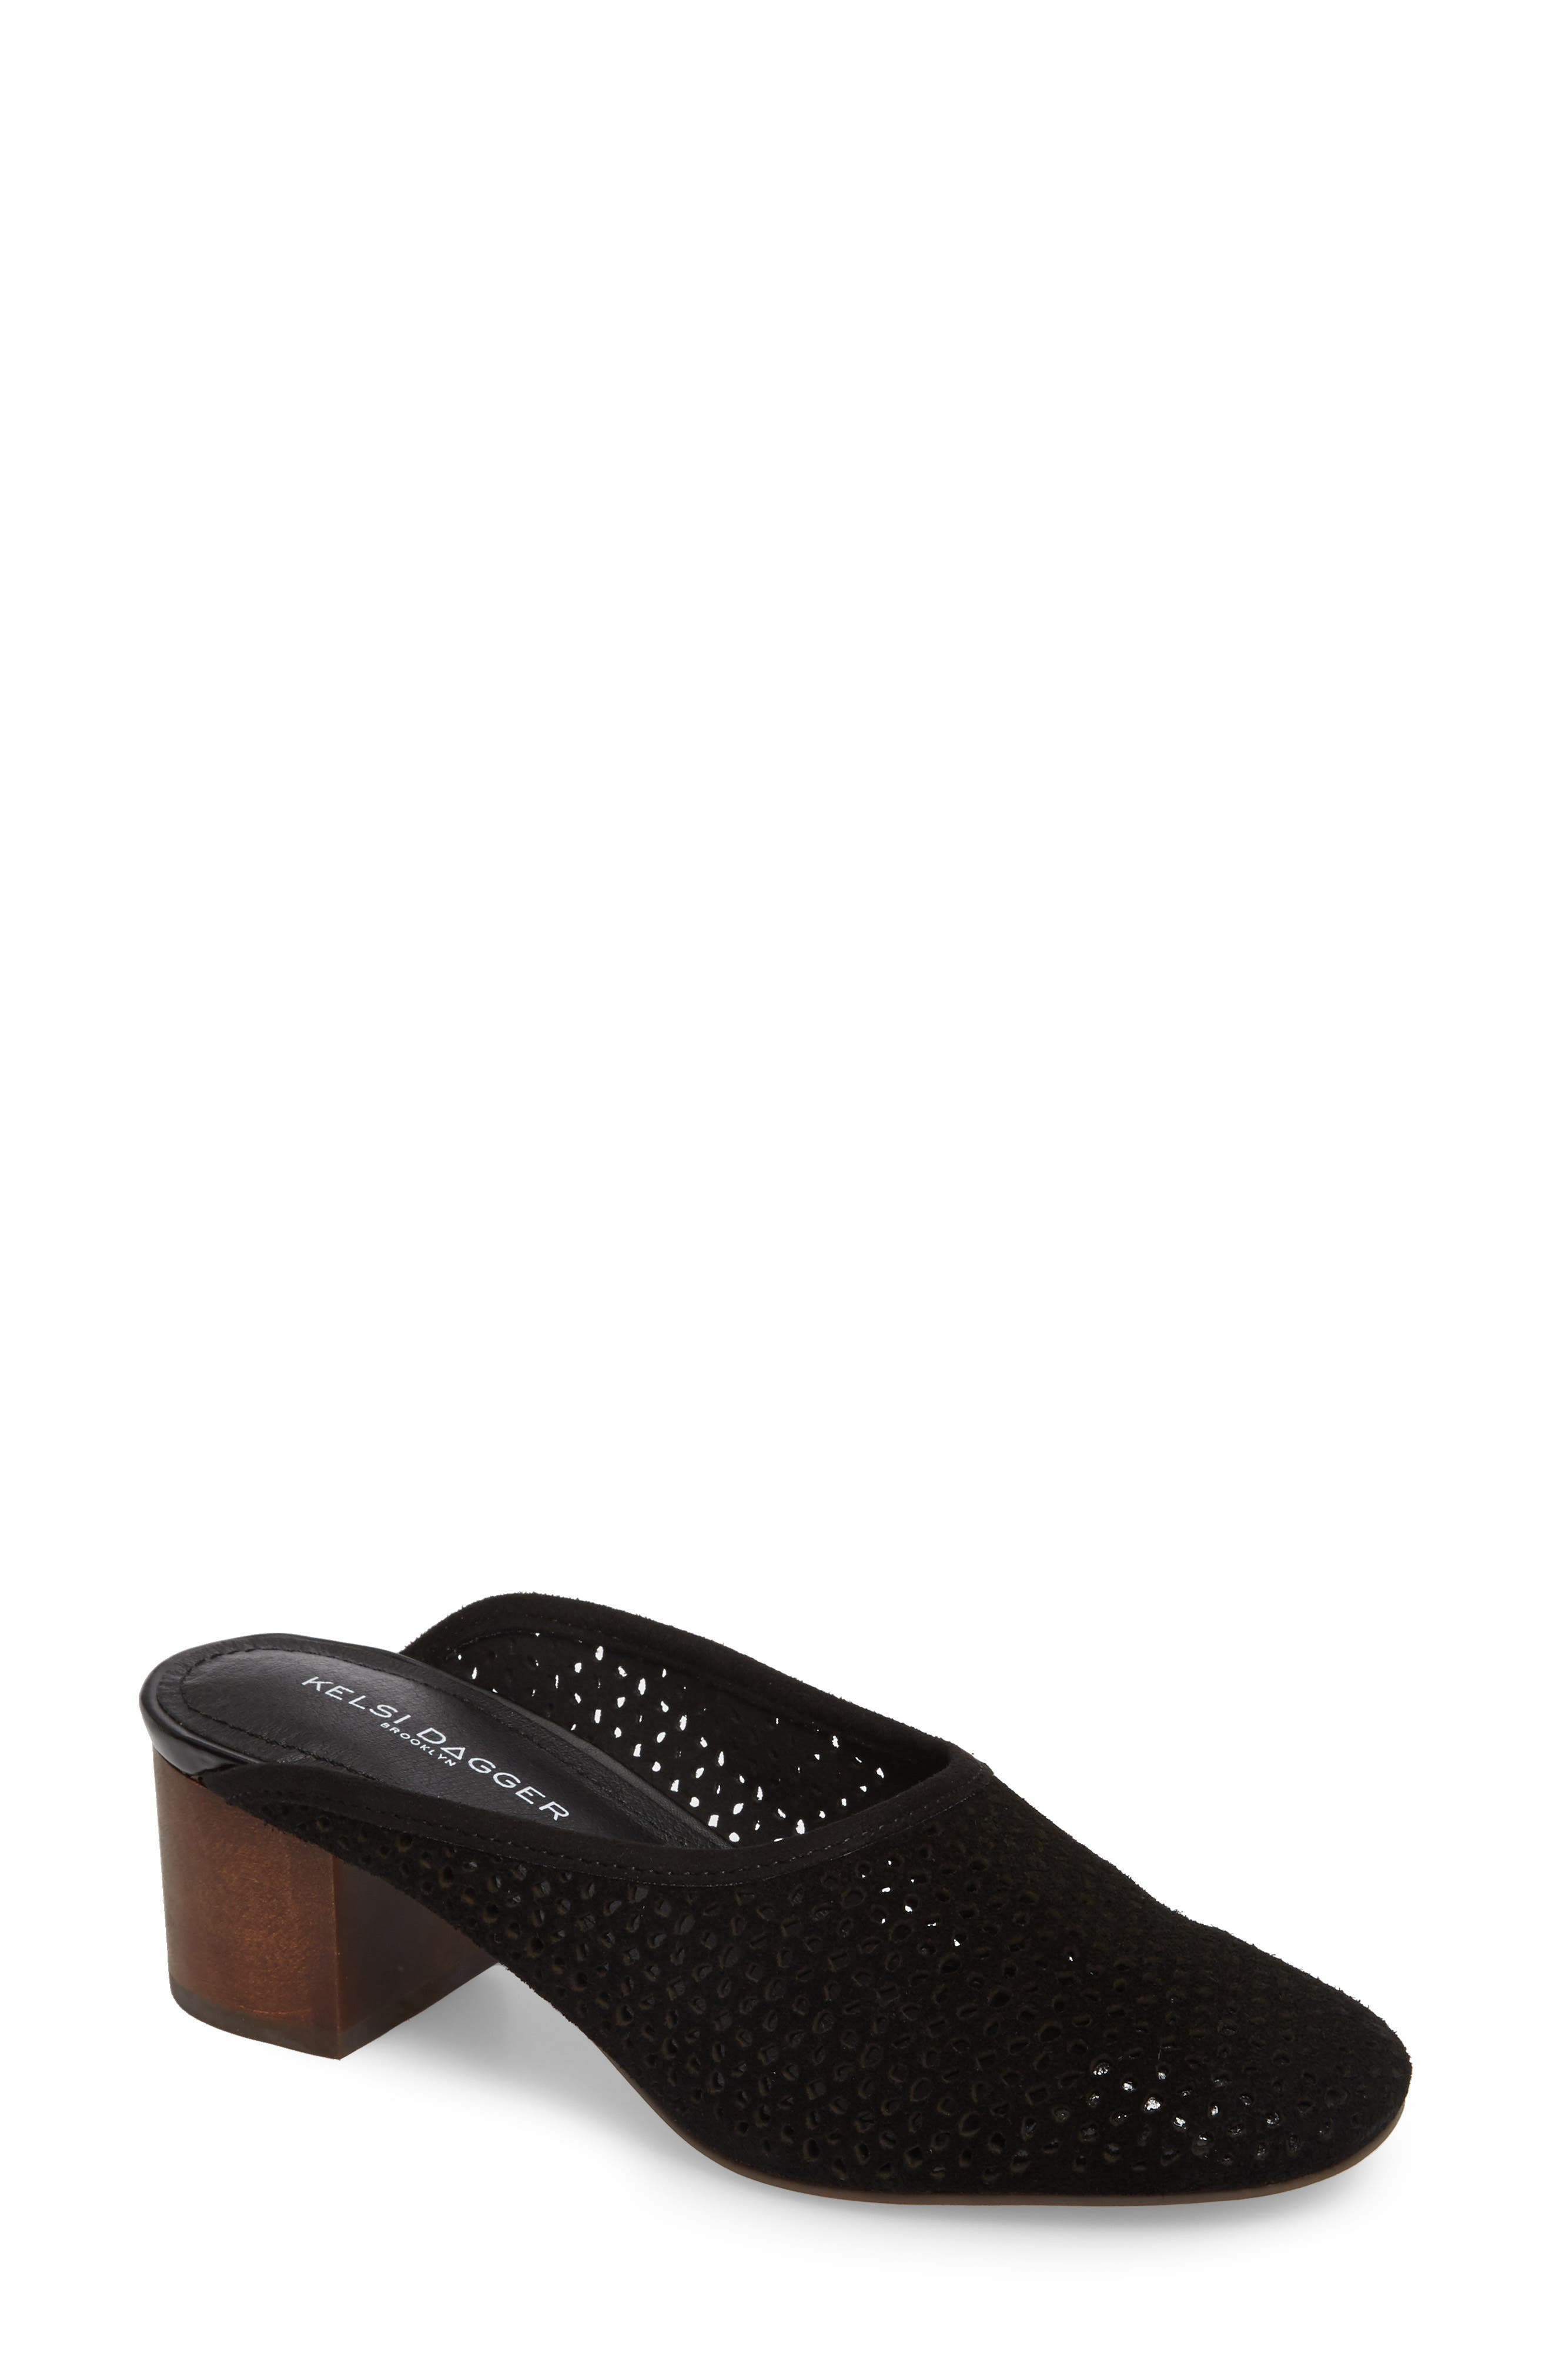 Lincoln Perforated Mule,                             Main thumbnail 1, color,                             Black